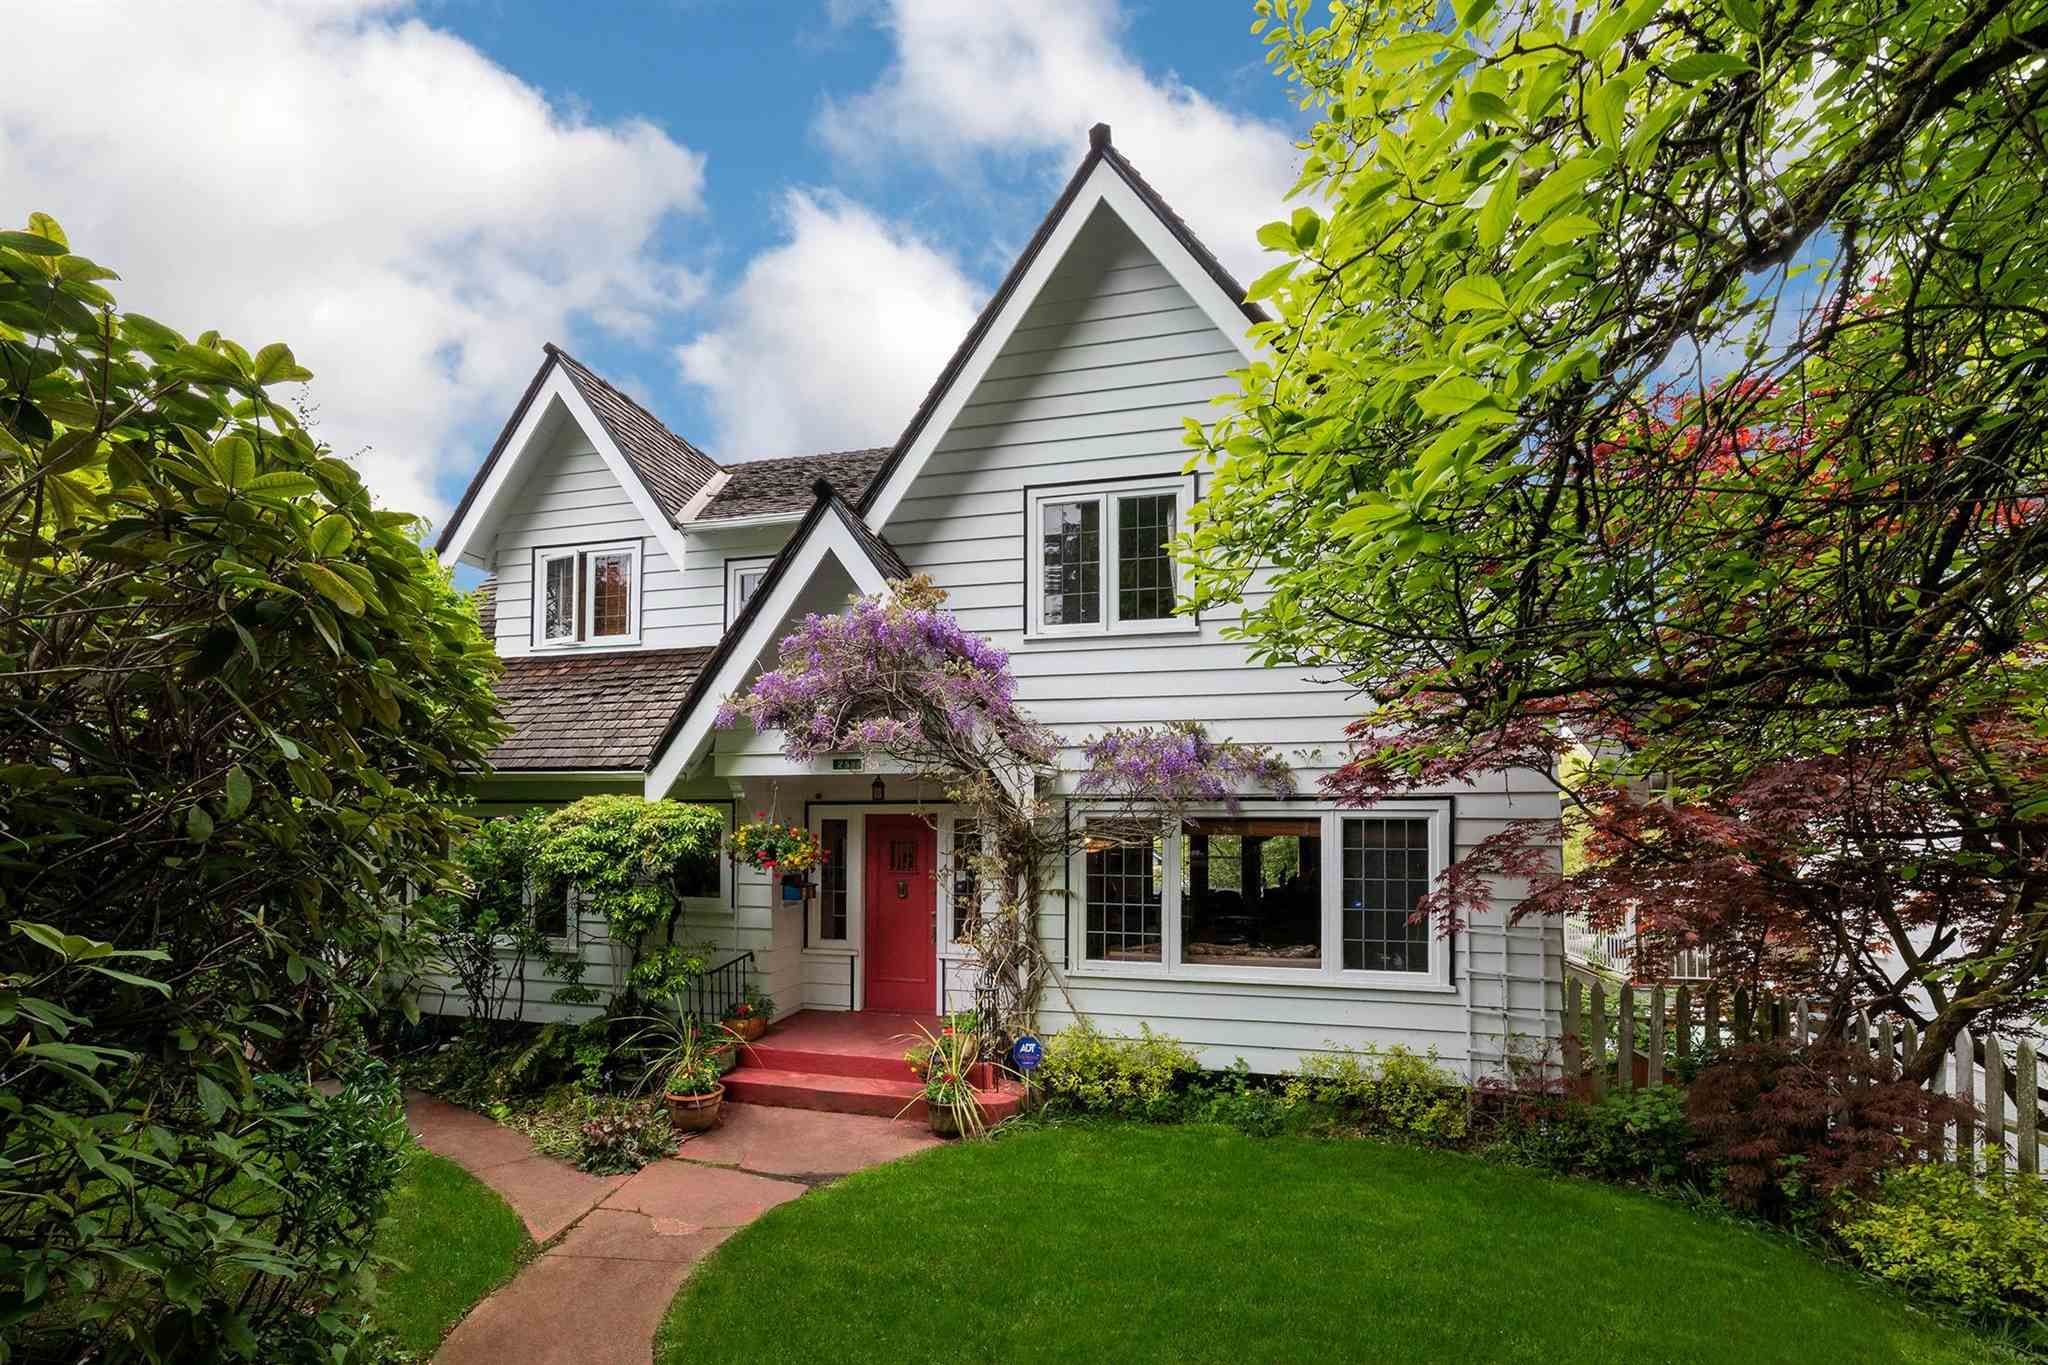 Main Photo: 2588 WALLACE Crescent in Vancouver: Point Grey House for sale (Vancouver West)  : MLS®# R2599733